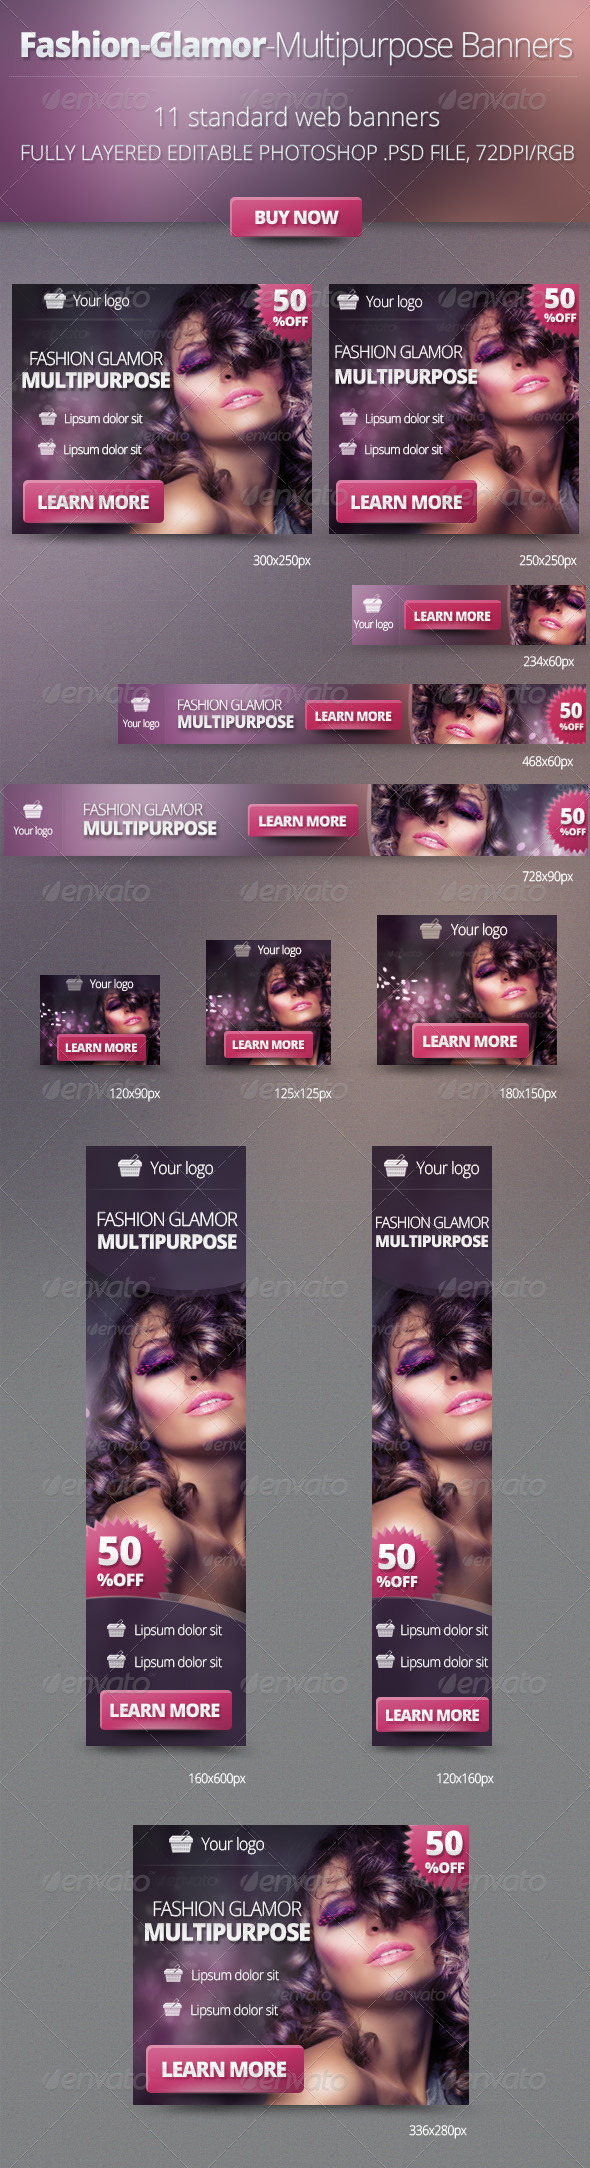 Fashion Glamor Multipurpose Banners - Banners & Ads Web Elements